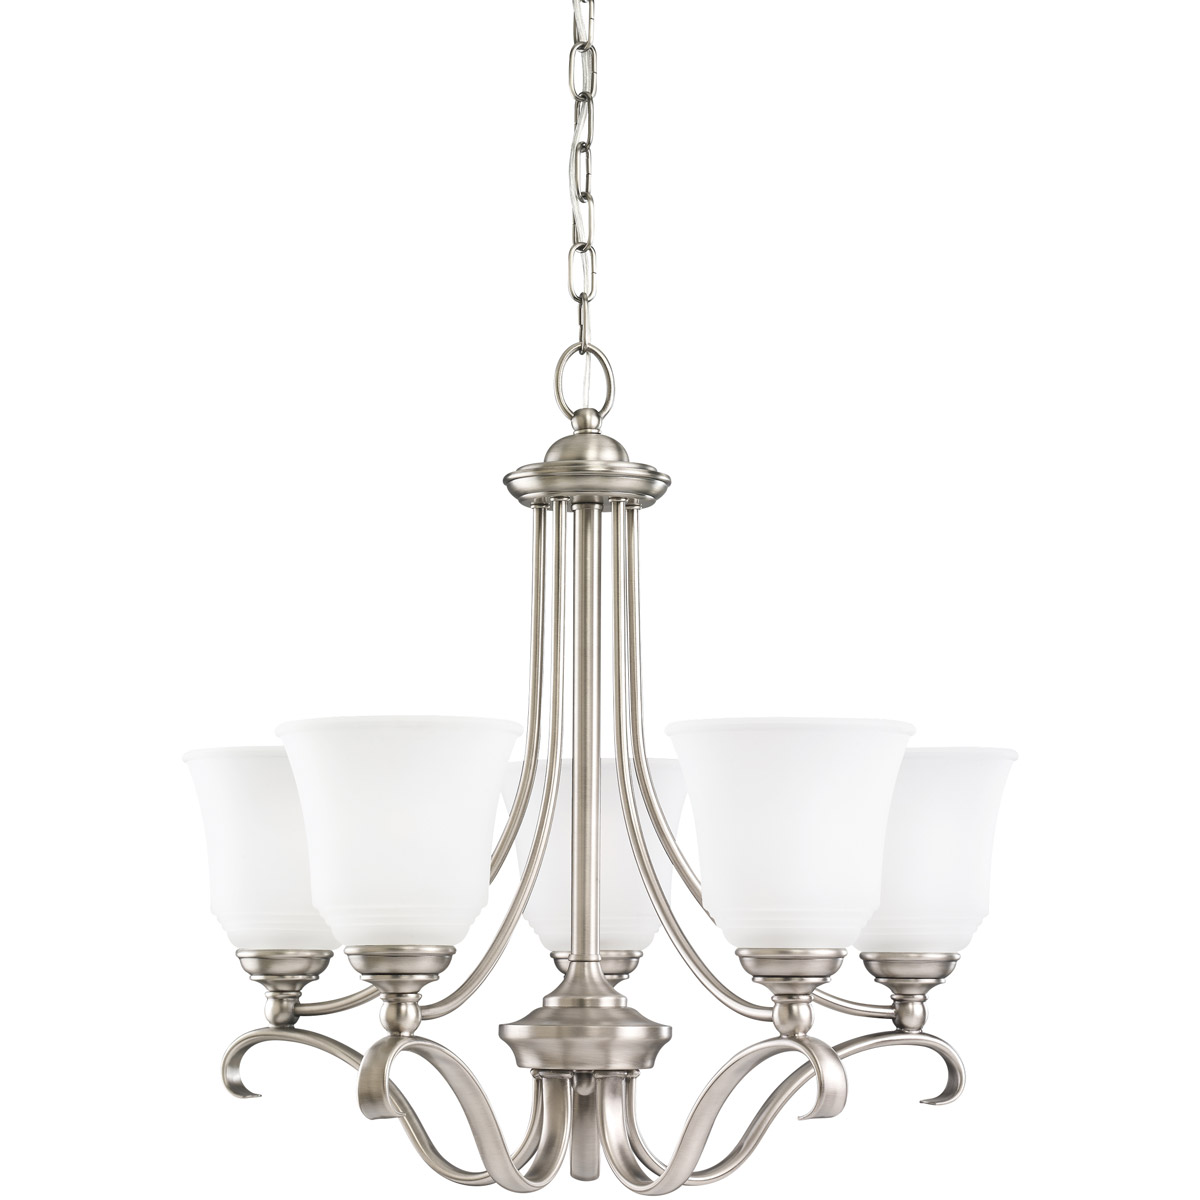 Sea Gull 31380-965 Parkview 5 Light 24 inch Antique Brushed Nickel Chandelier Ceiling Light in Satin Etched Glass photo